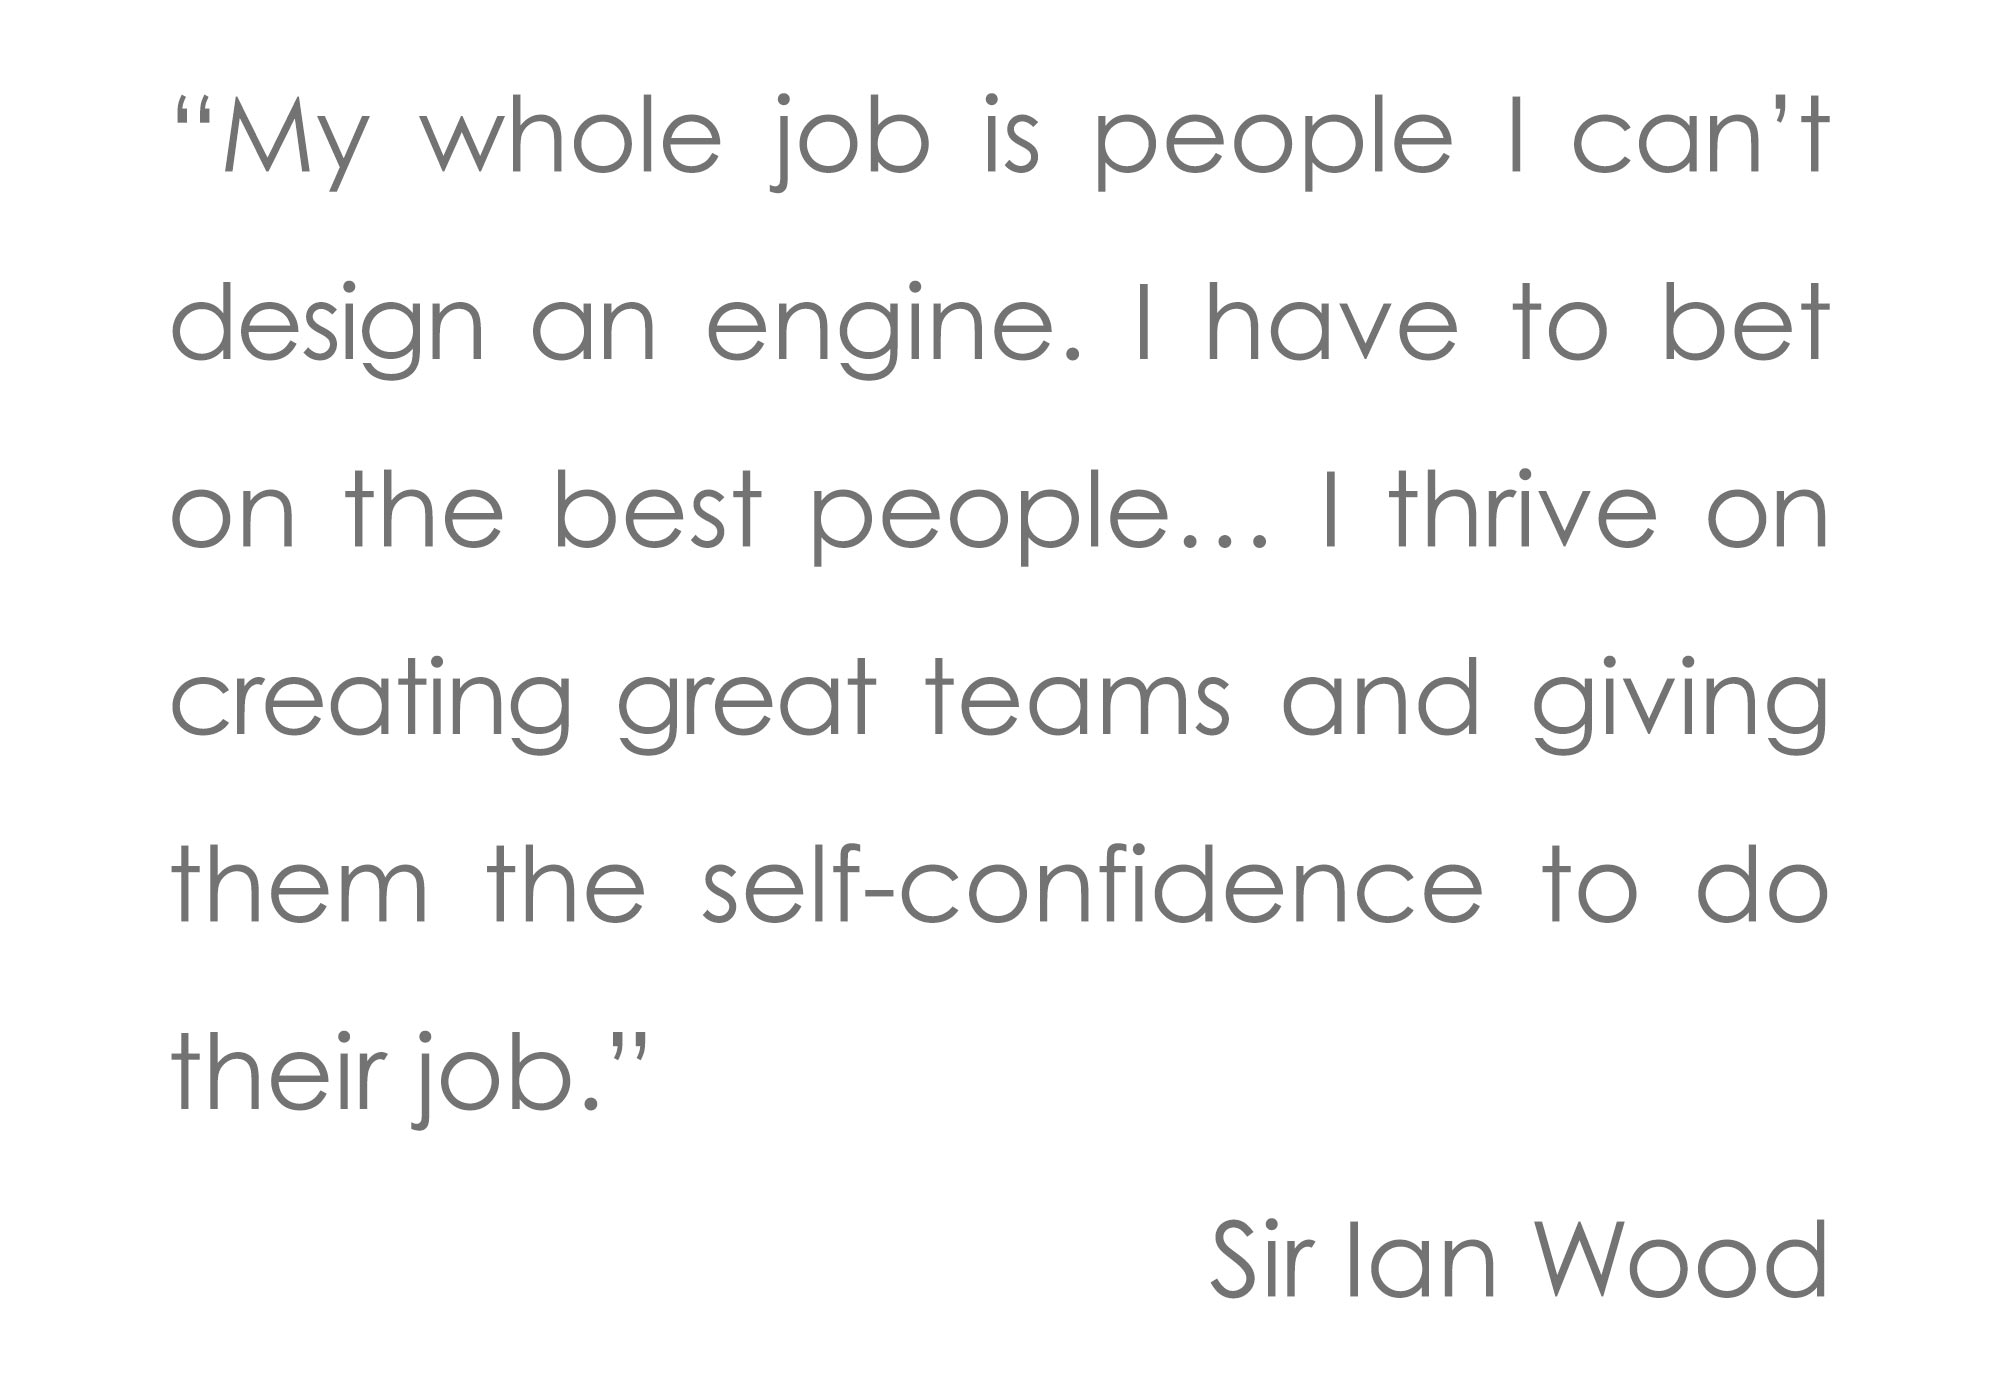 Ian-Wood-quote-25pt-text.jpg